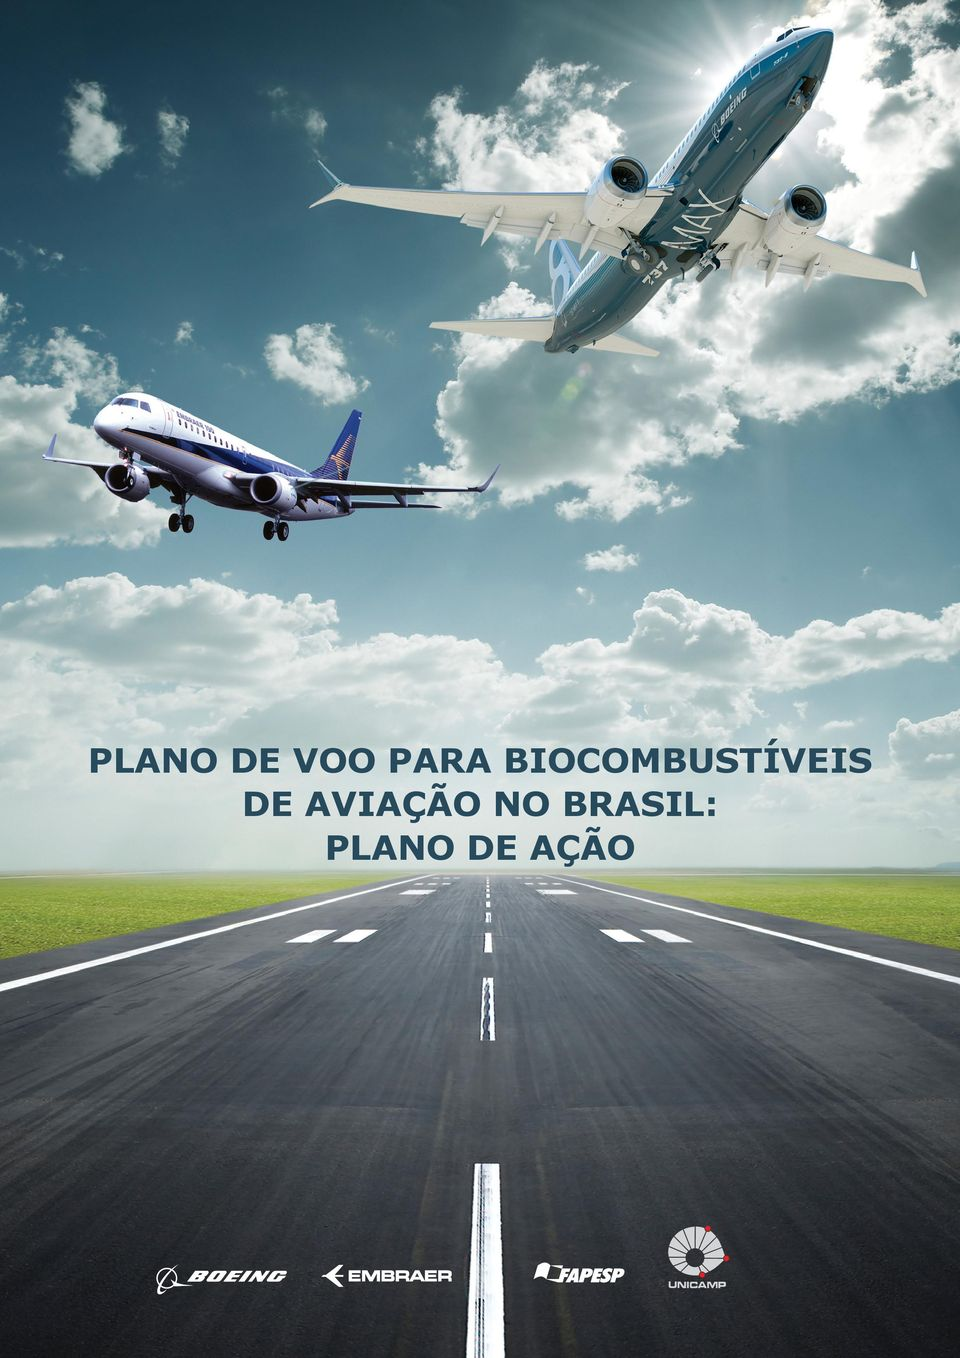 de AVIAÇÃO NO